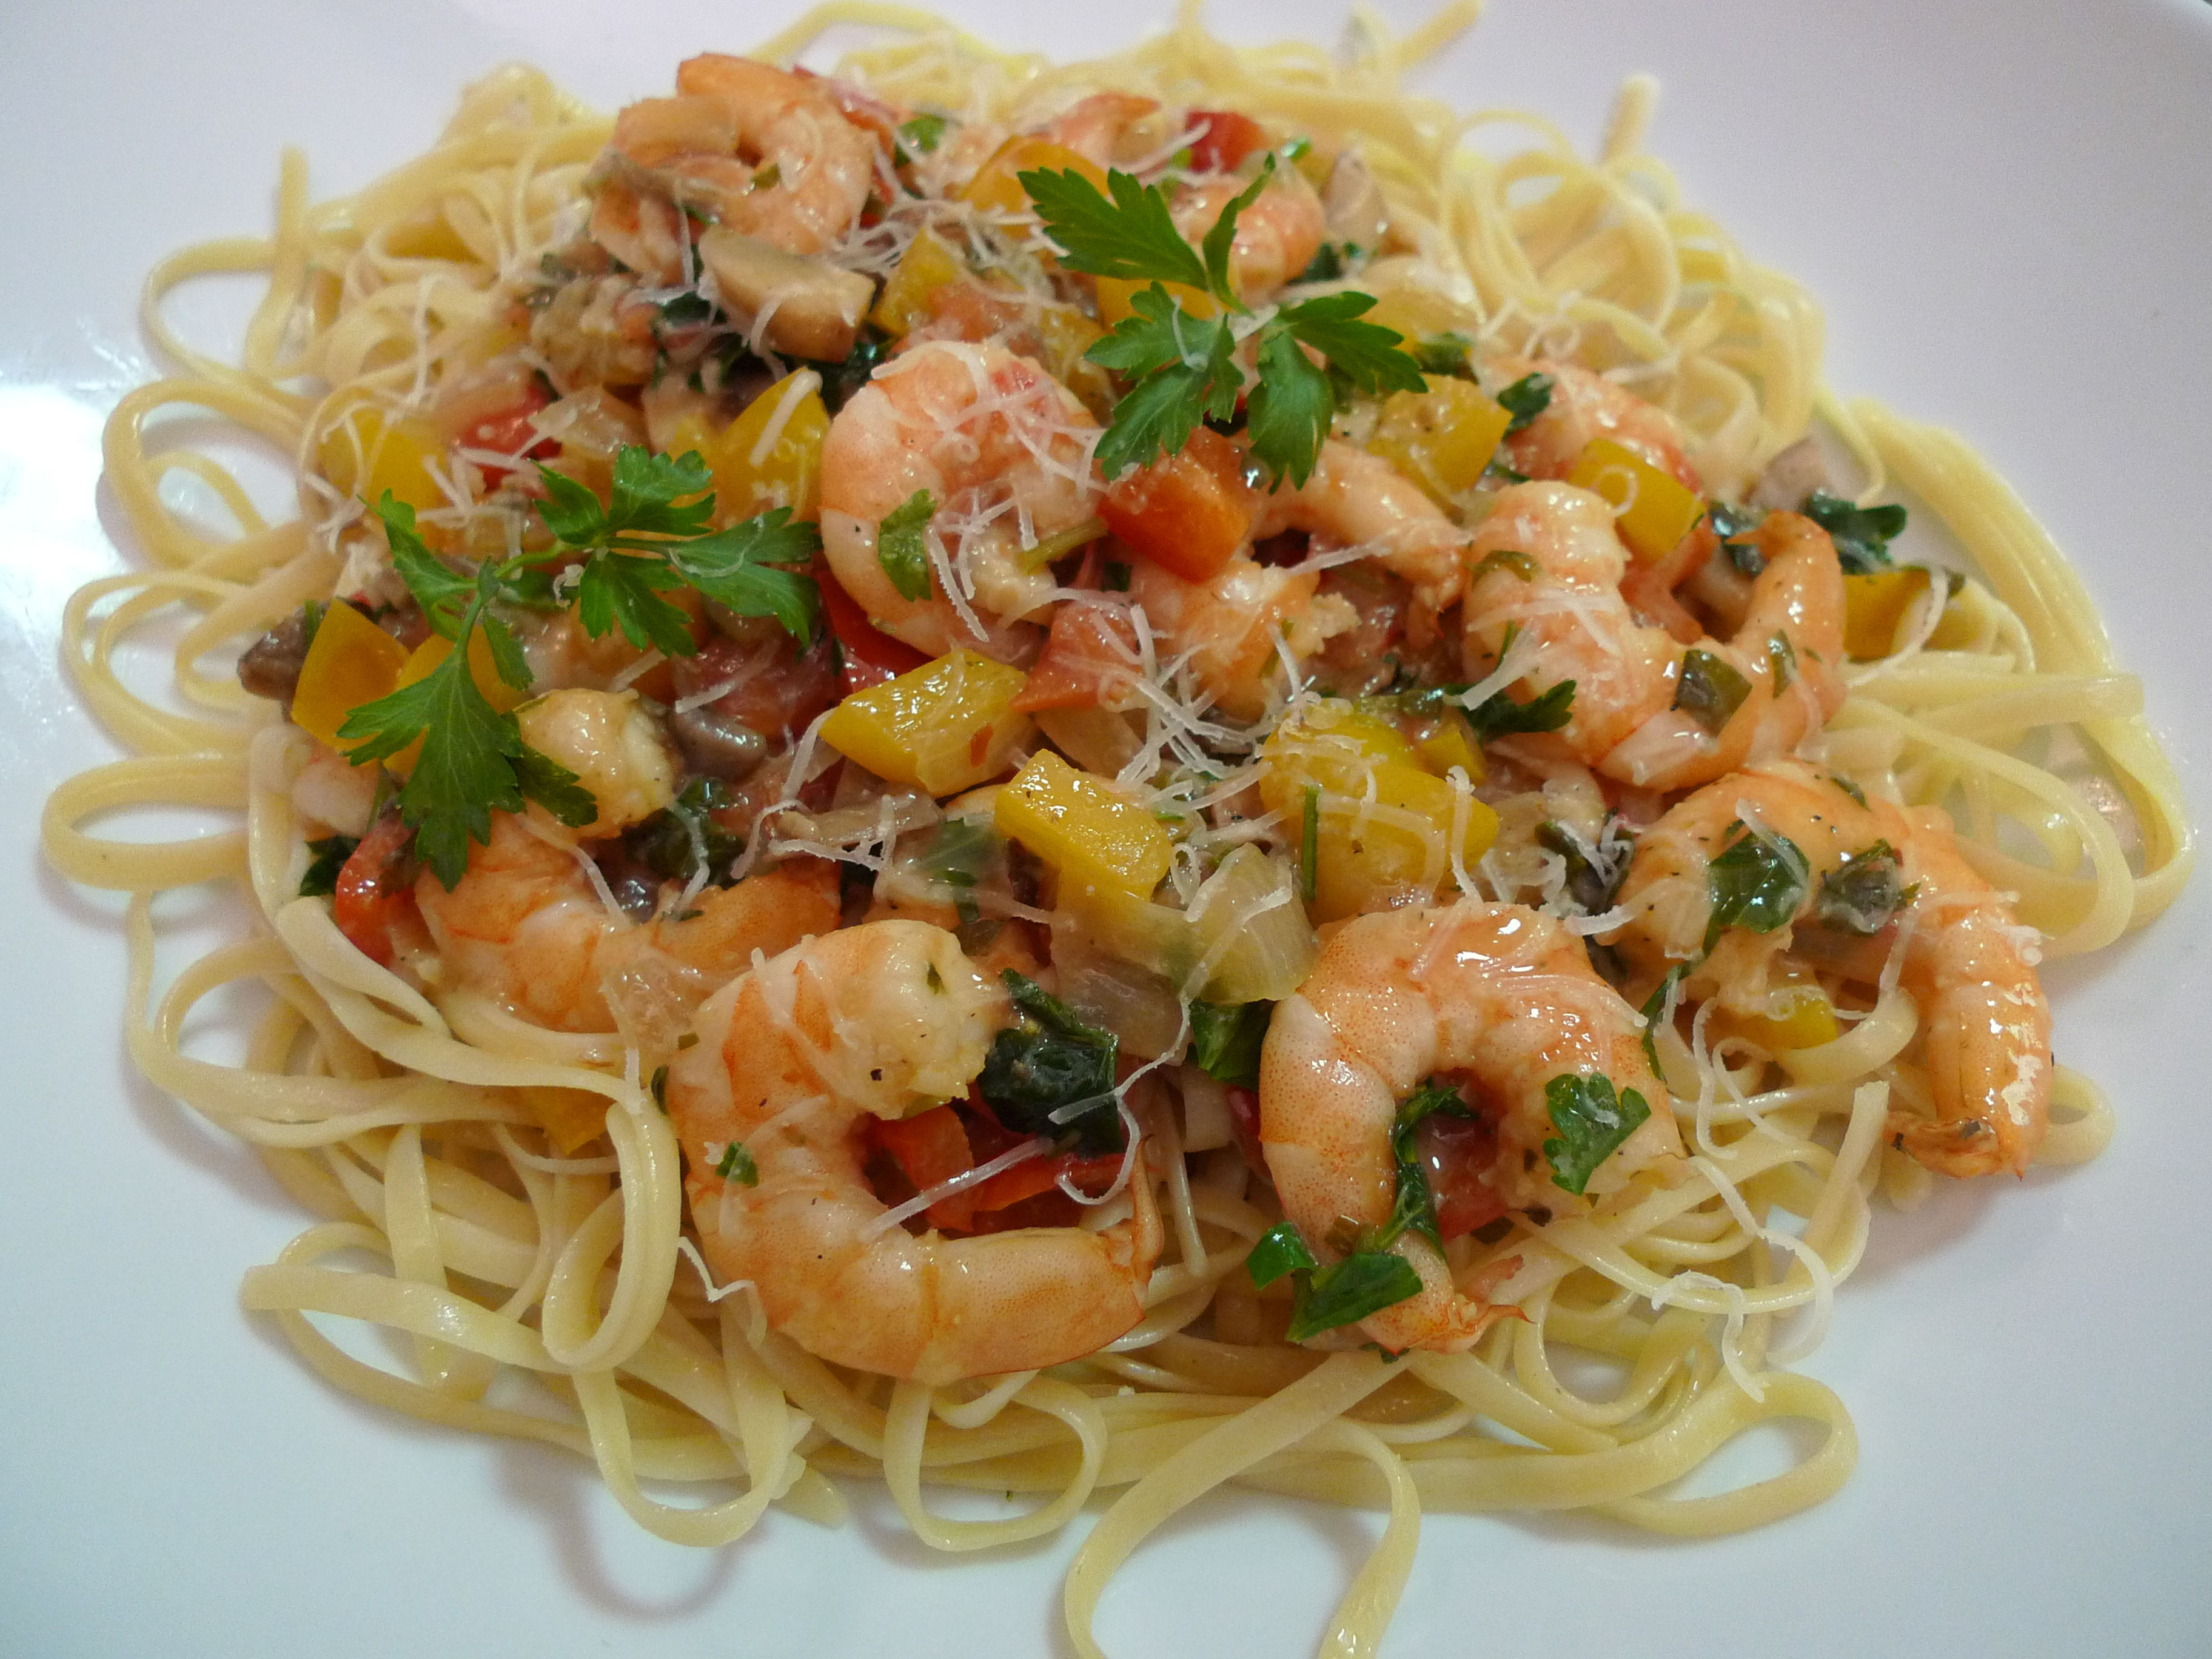 shrimp scampi topped with parsley and asiago cheese